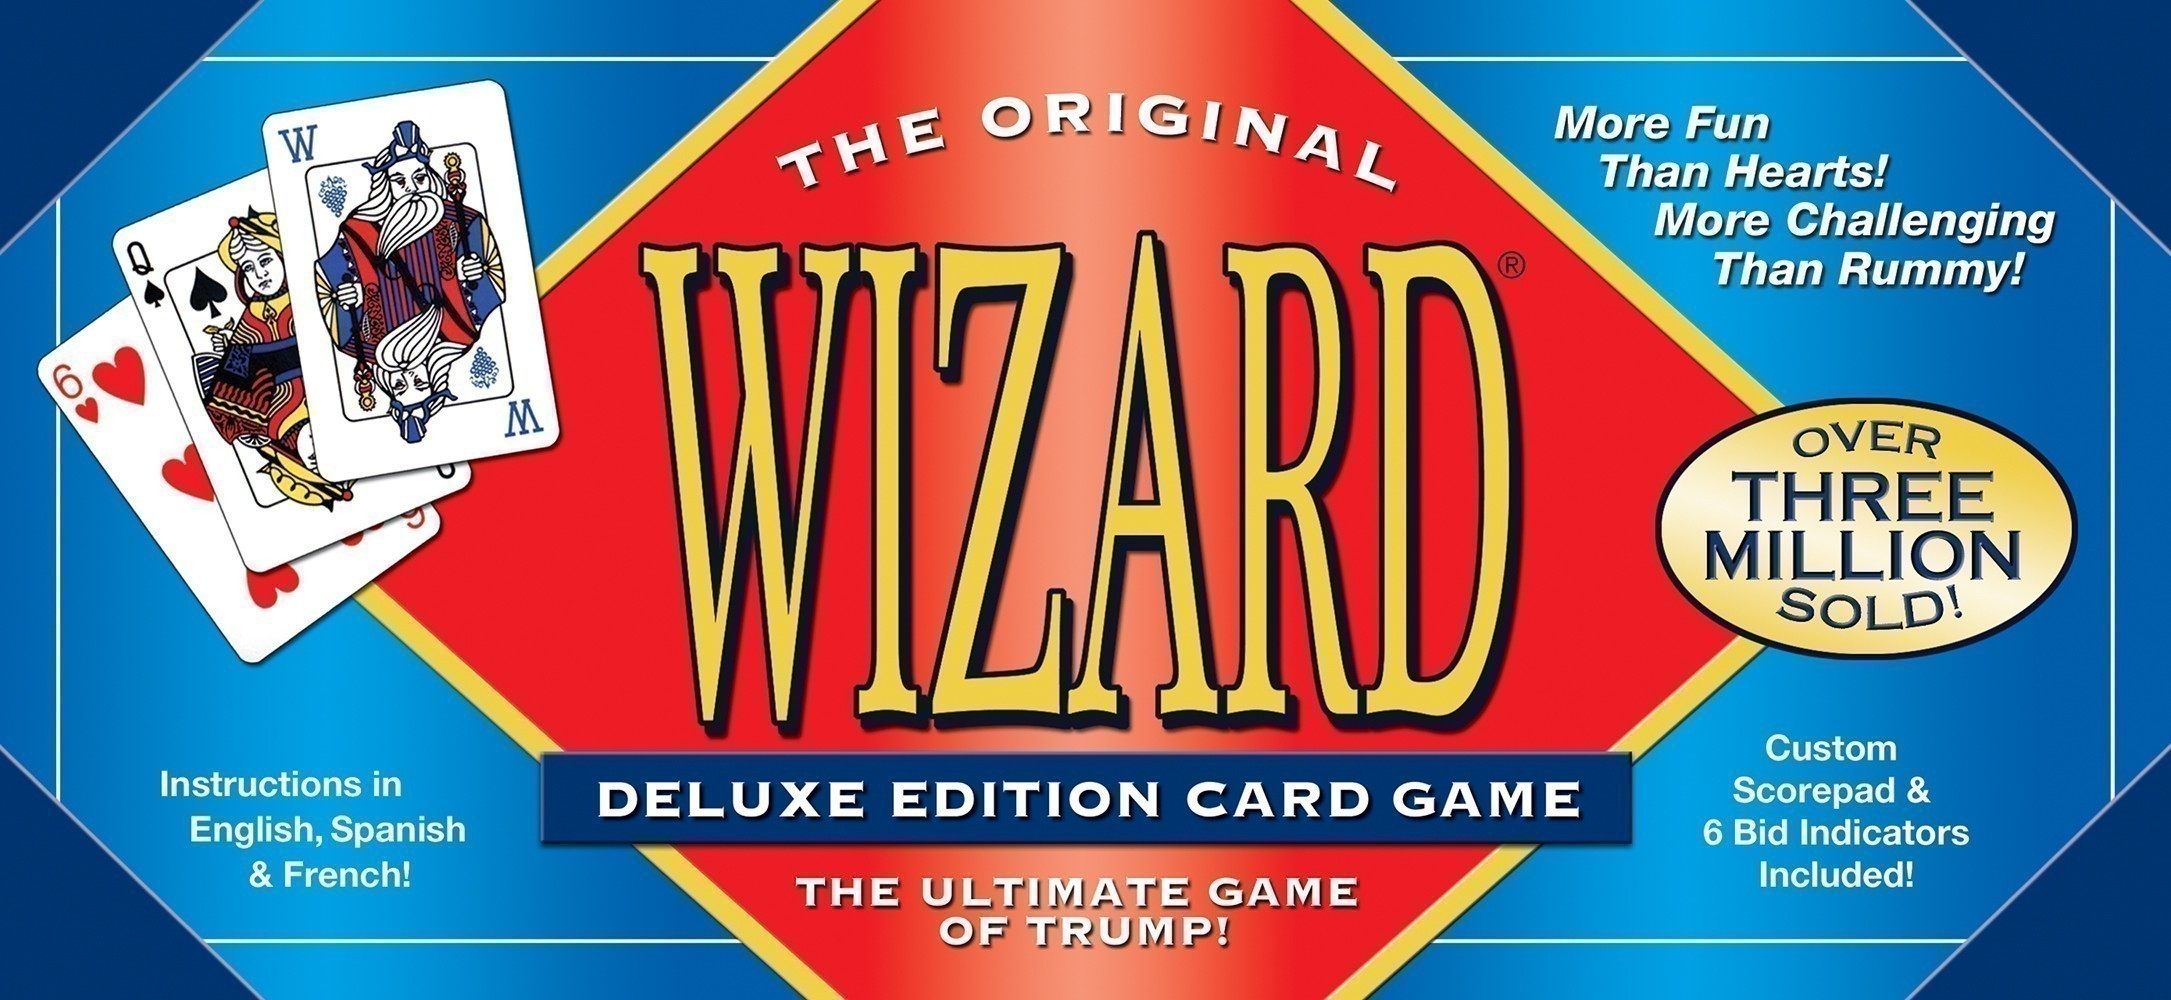 Wizard® Card Game Deluxe Edition